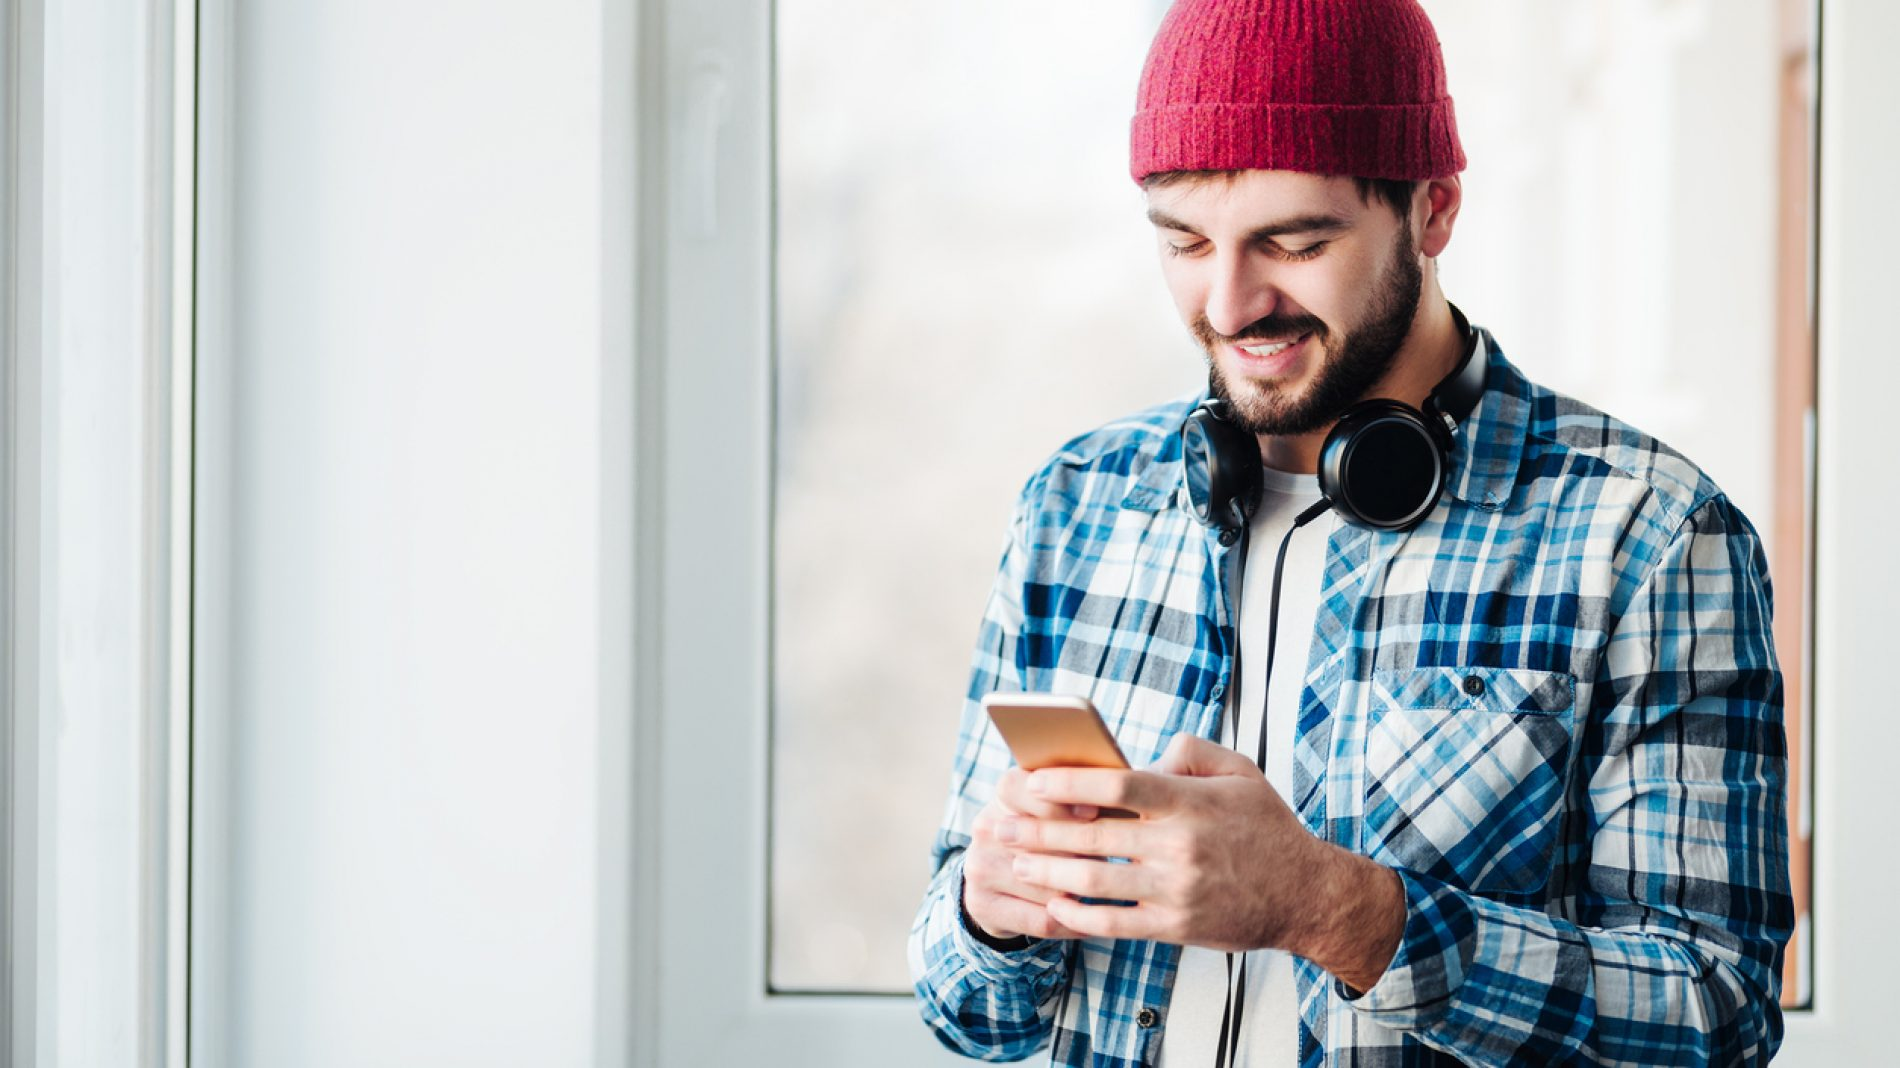 guy using a phone to listen music